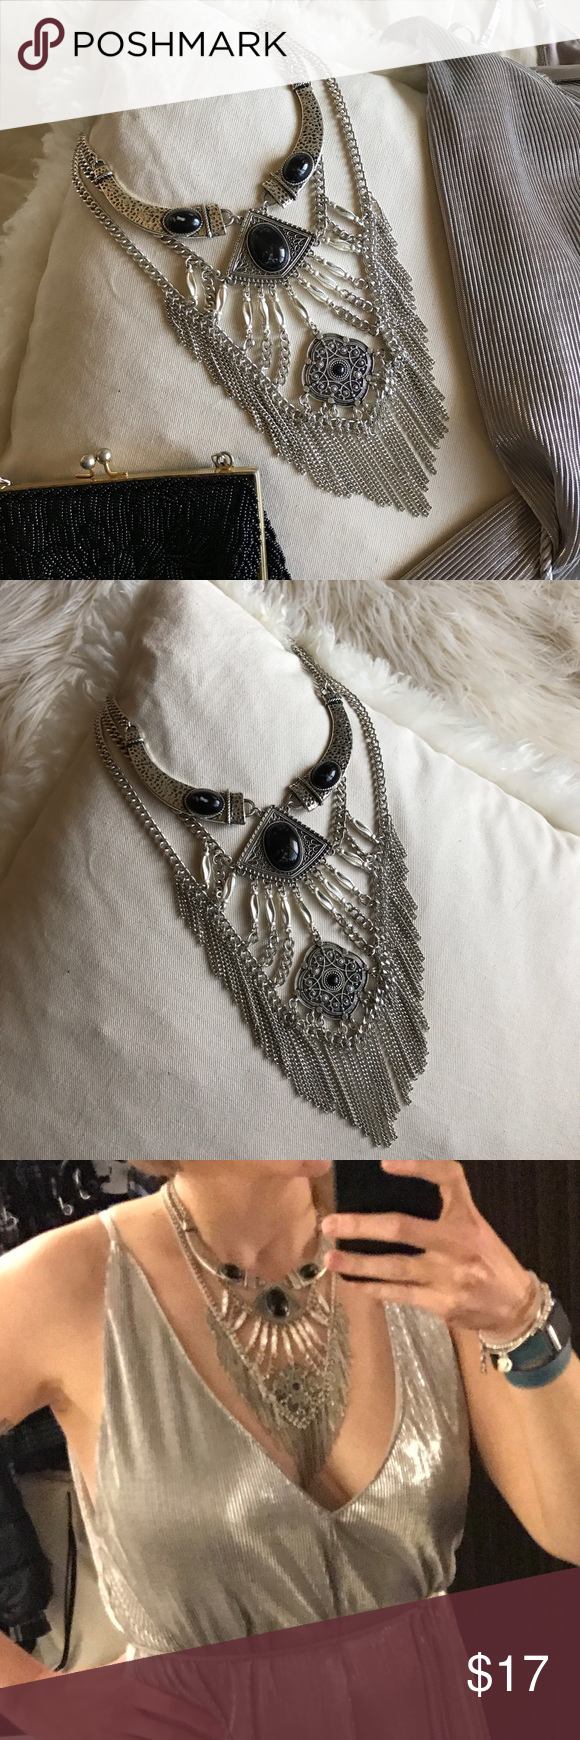 "H&M - Fringe Onyx statement necklace ⛓Bold and feisty multilayer statement necklace with onyx styled stones and fringe accent. ⛓28"" at longest point, with 3"" extender. H&M Jewelry Necklaces"